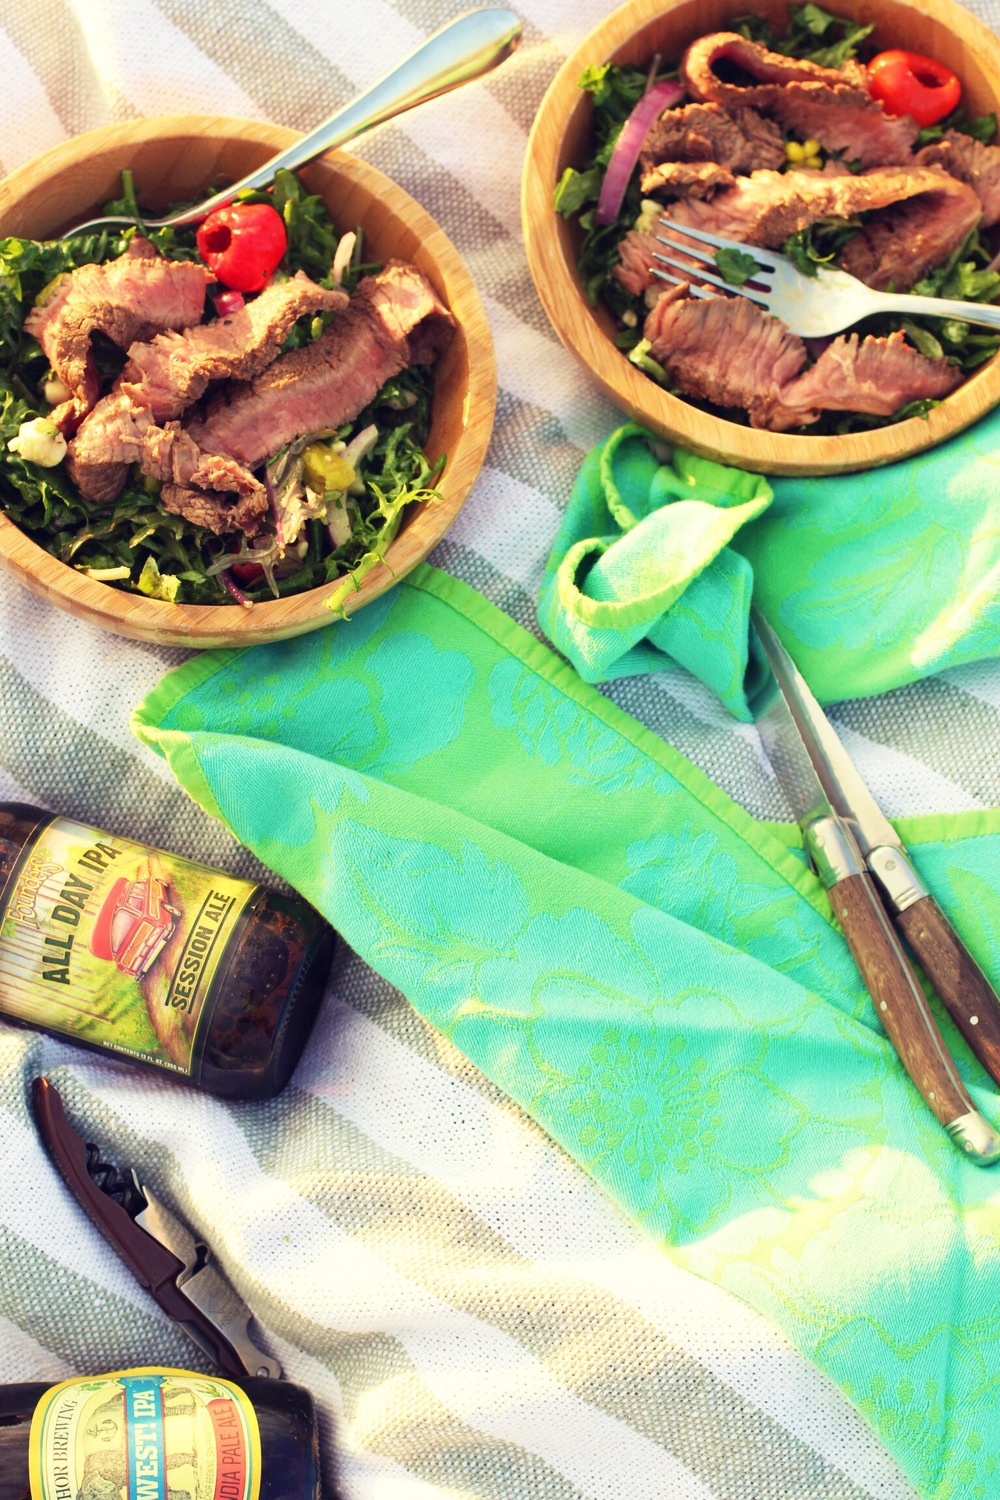 Summer picnic steak salad - The Pastiche